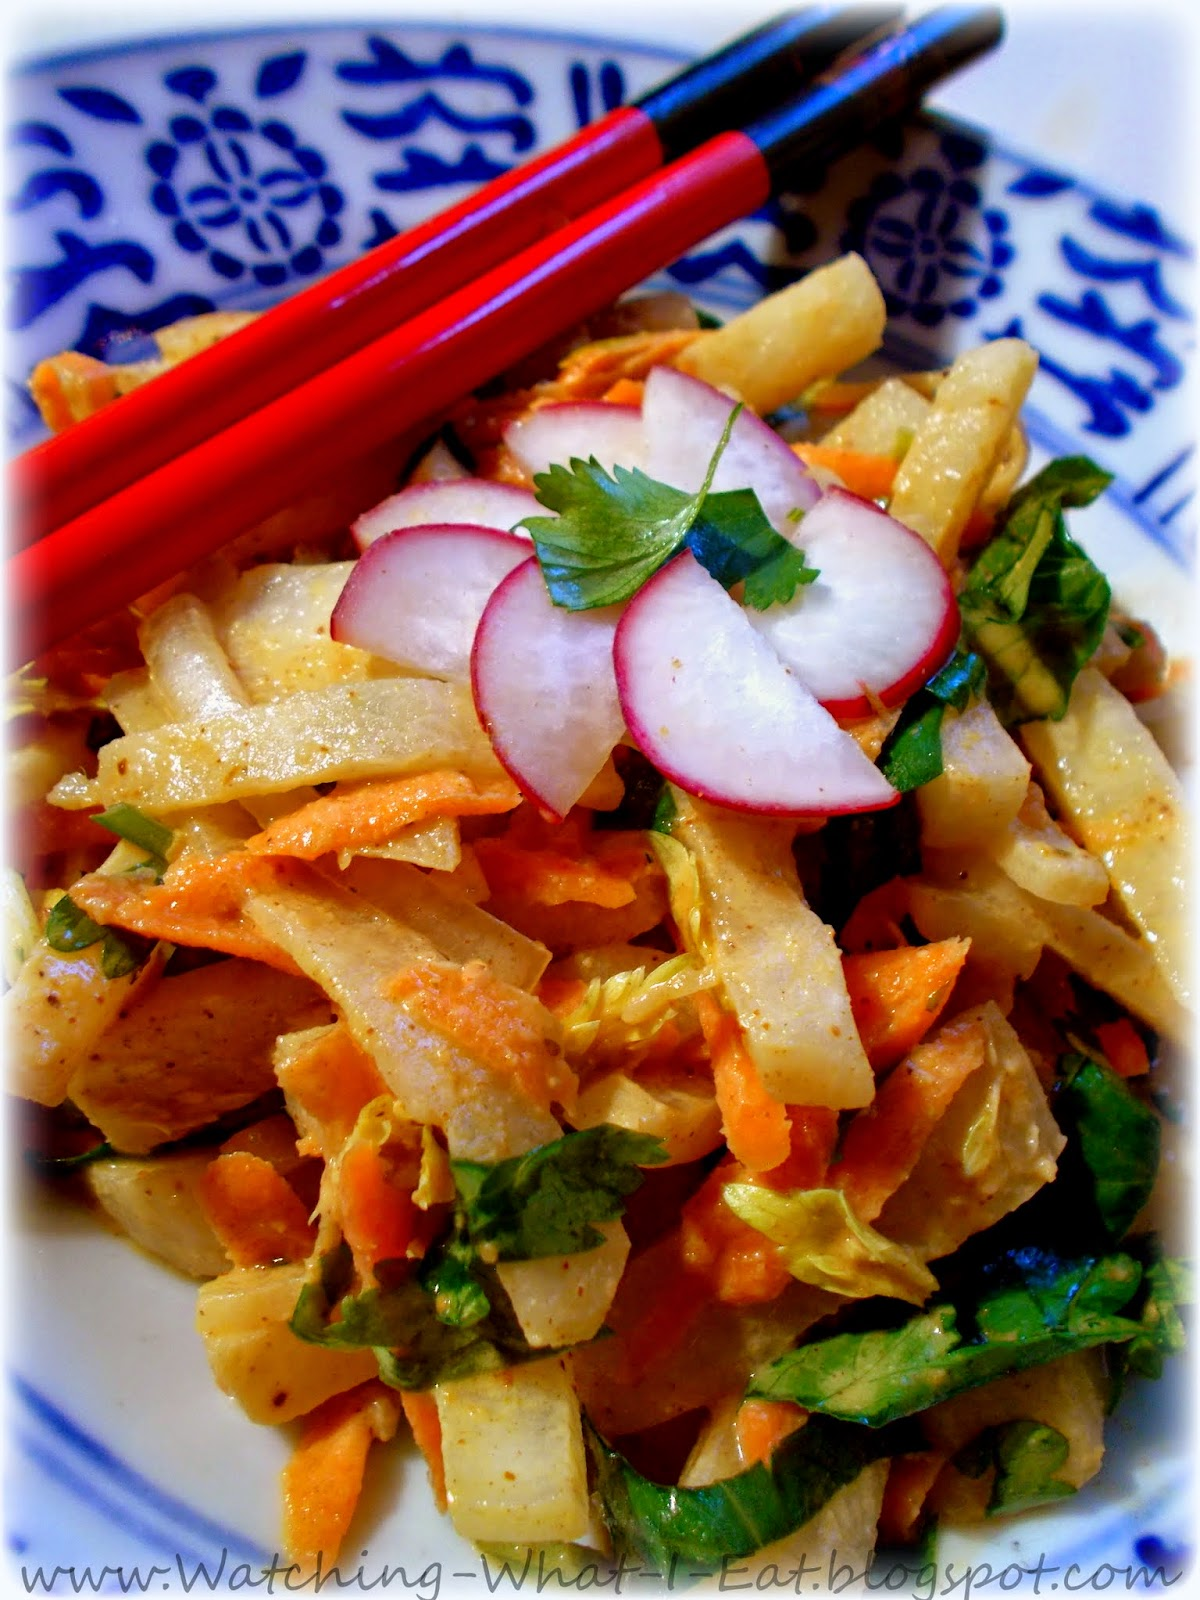 Jicama Salad with Spicy Peanut Dressing ~ Meatless Monday